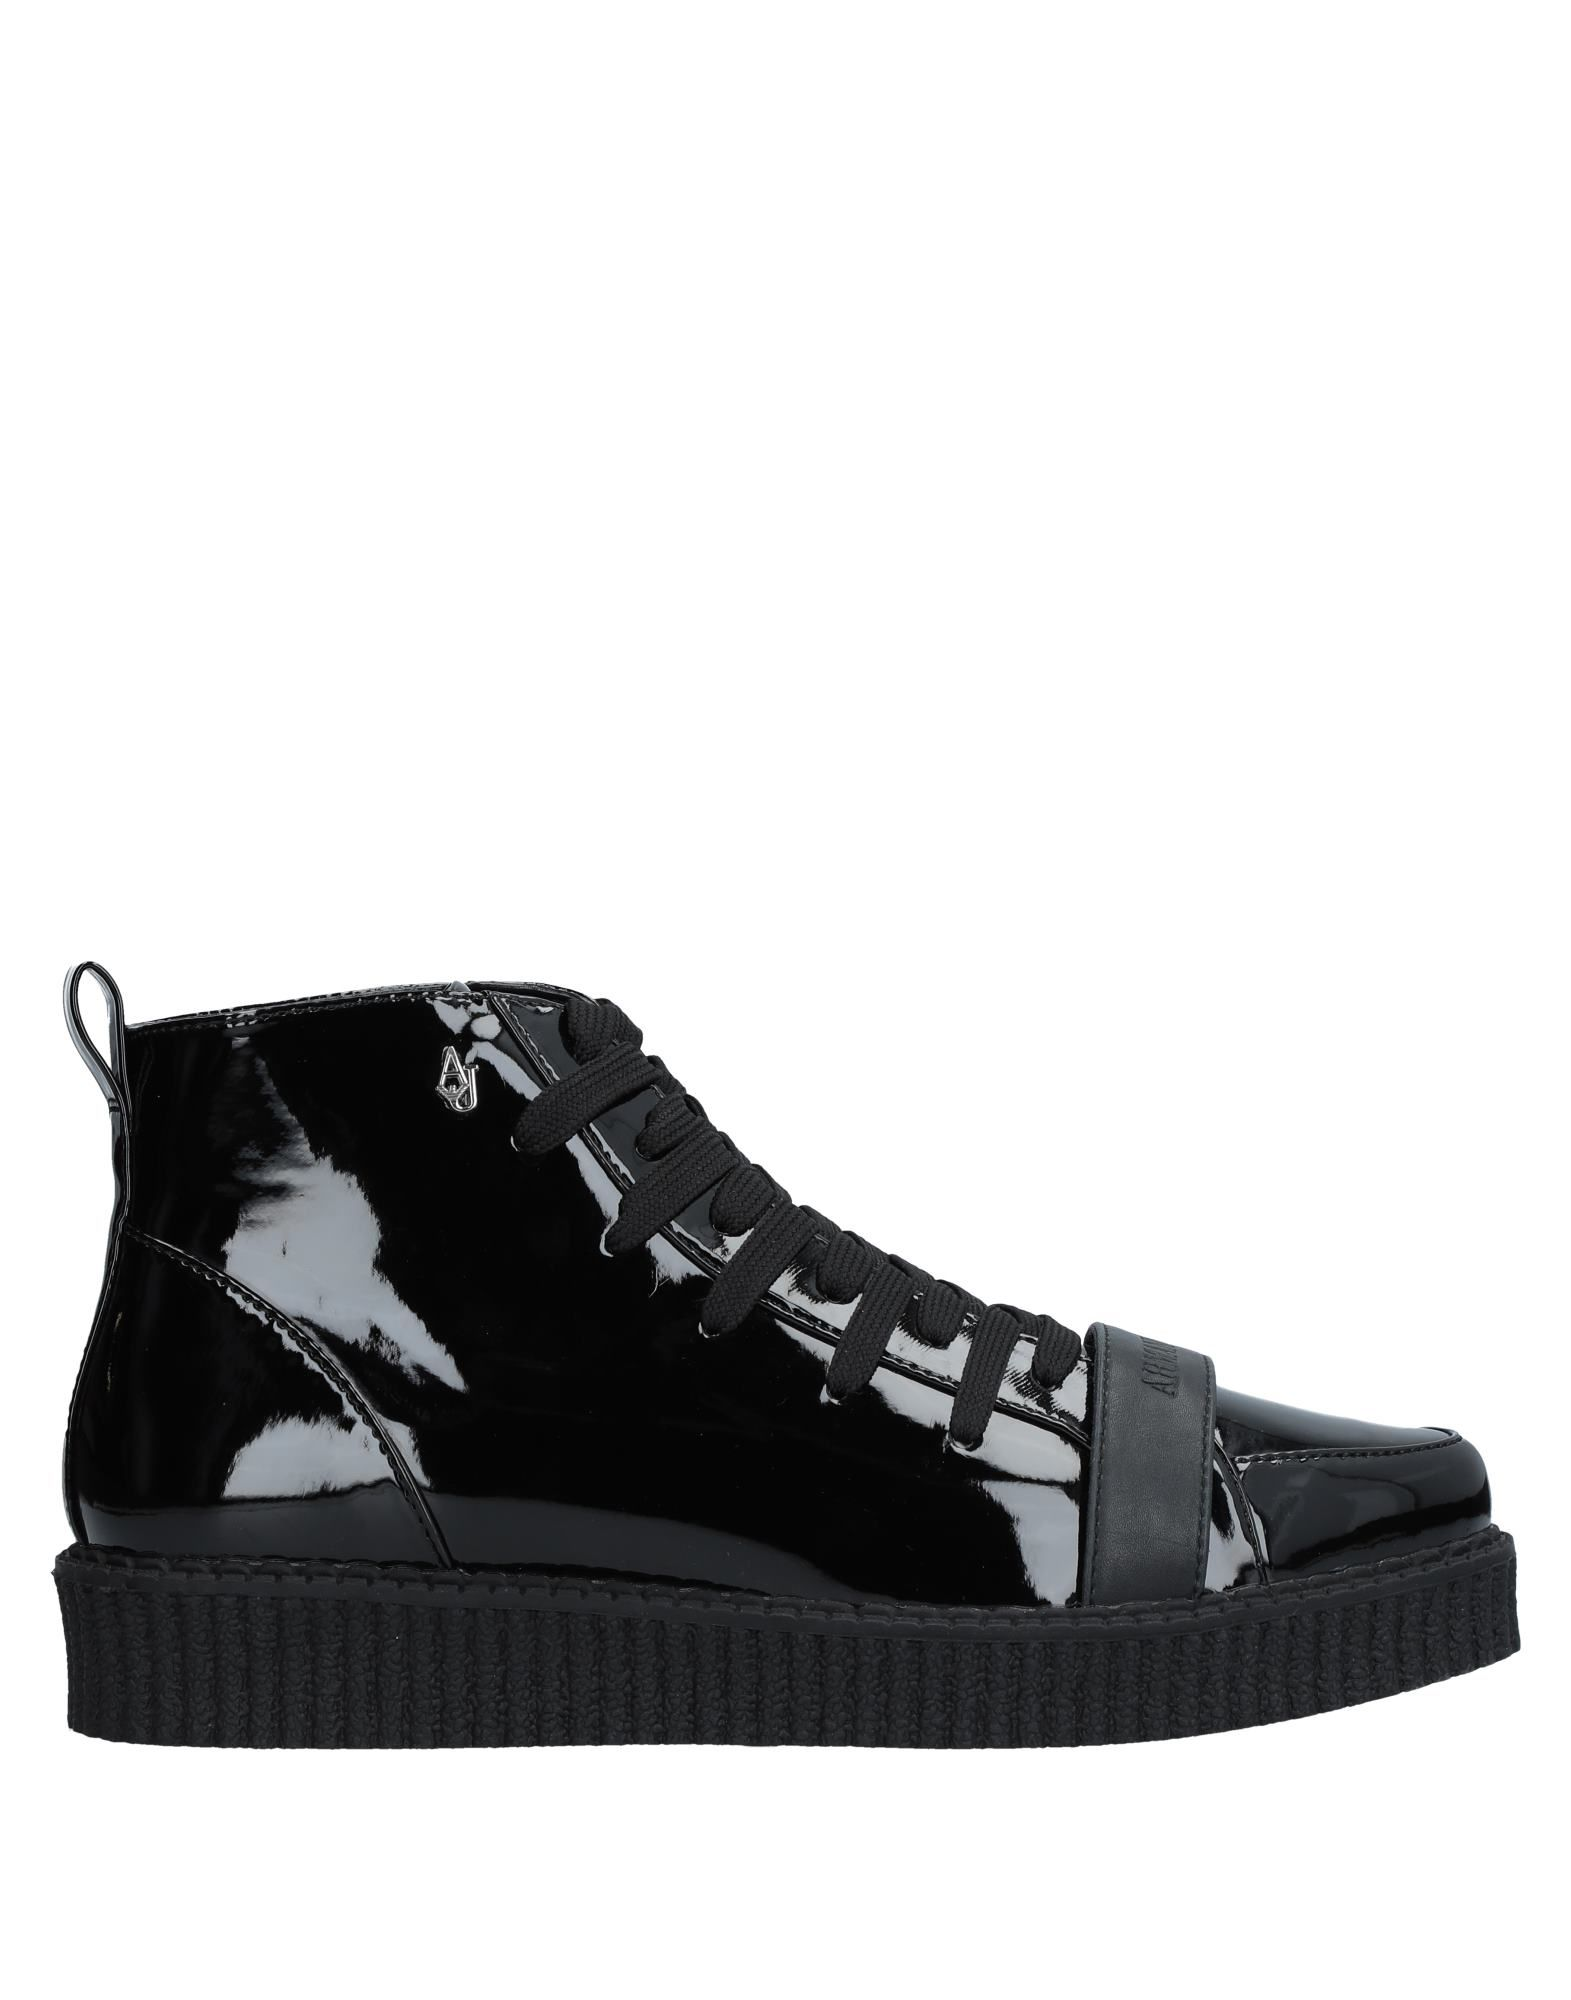 Sneakers Armani Jeans Donna Donna Jeans - 11537680JQ 76aad9